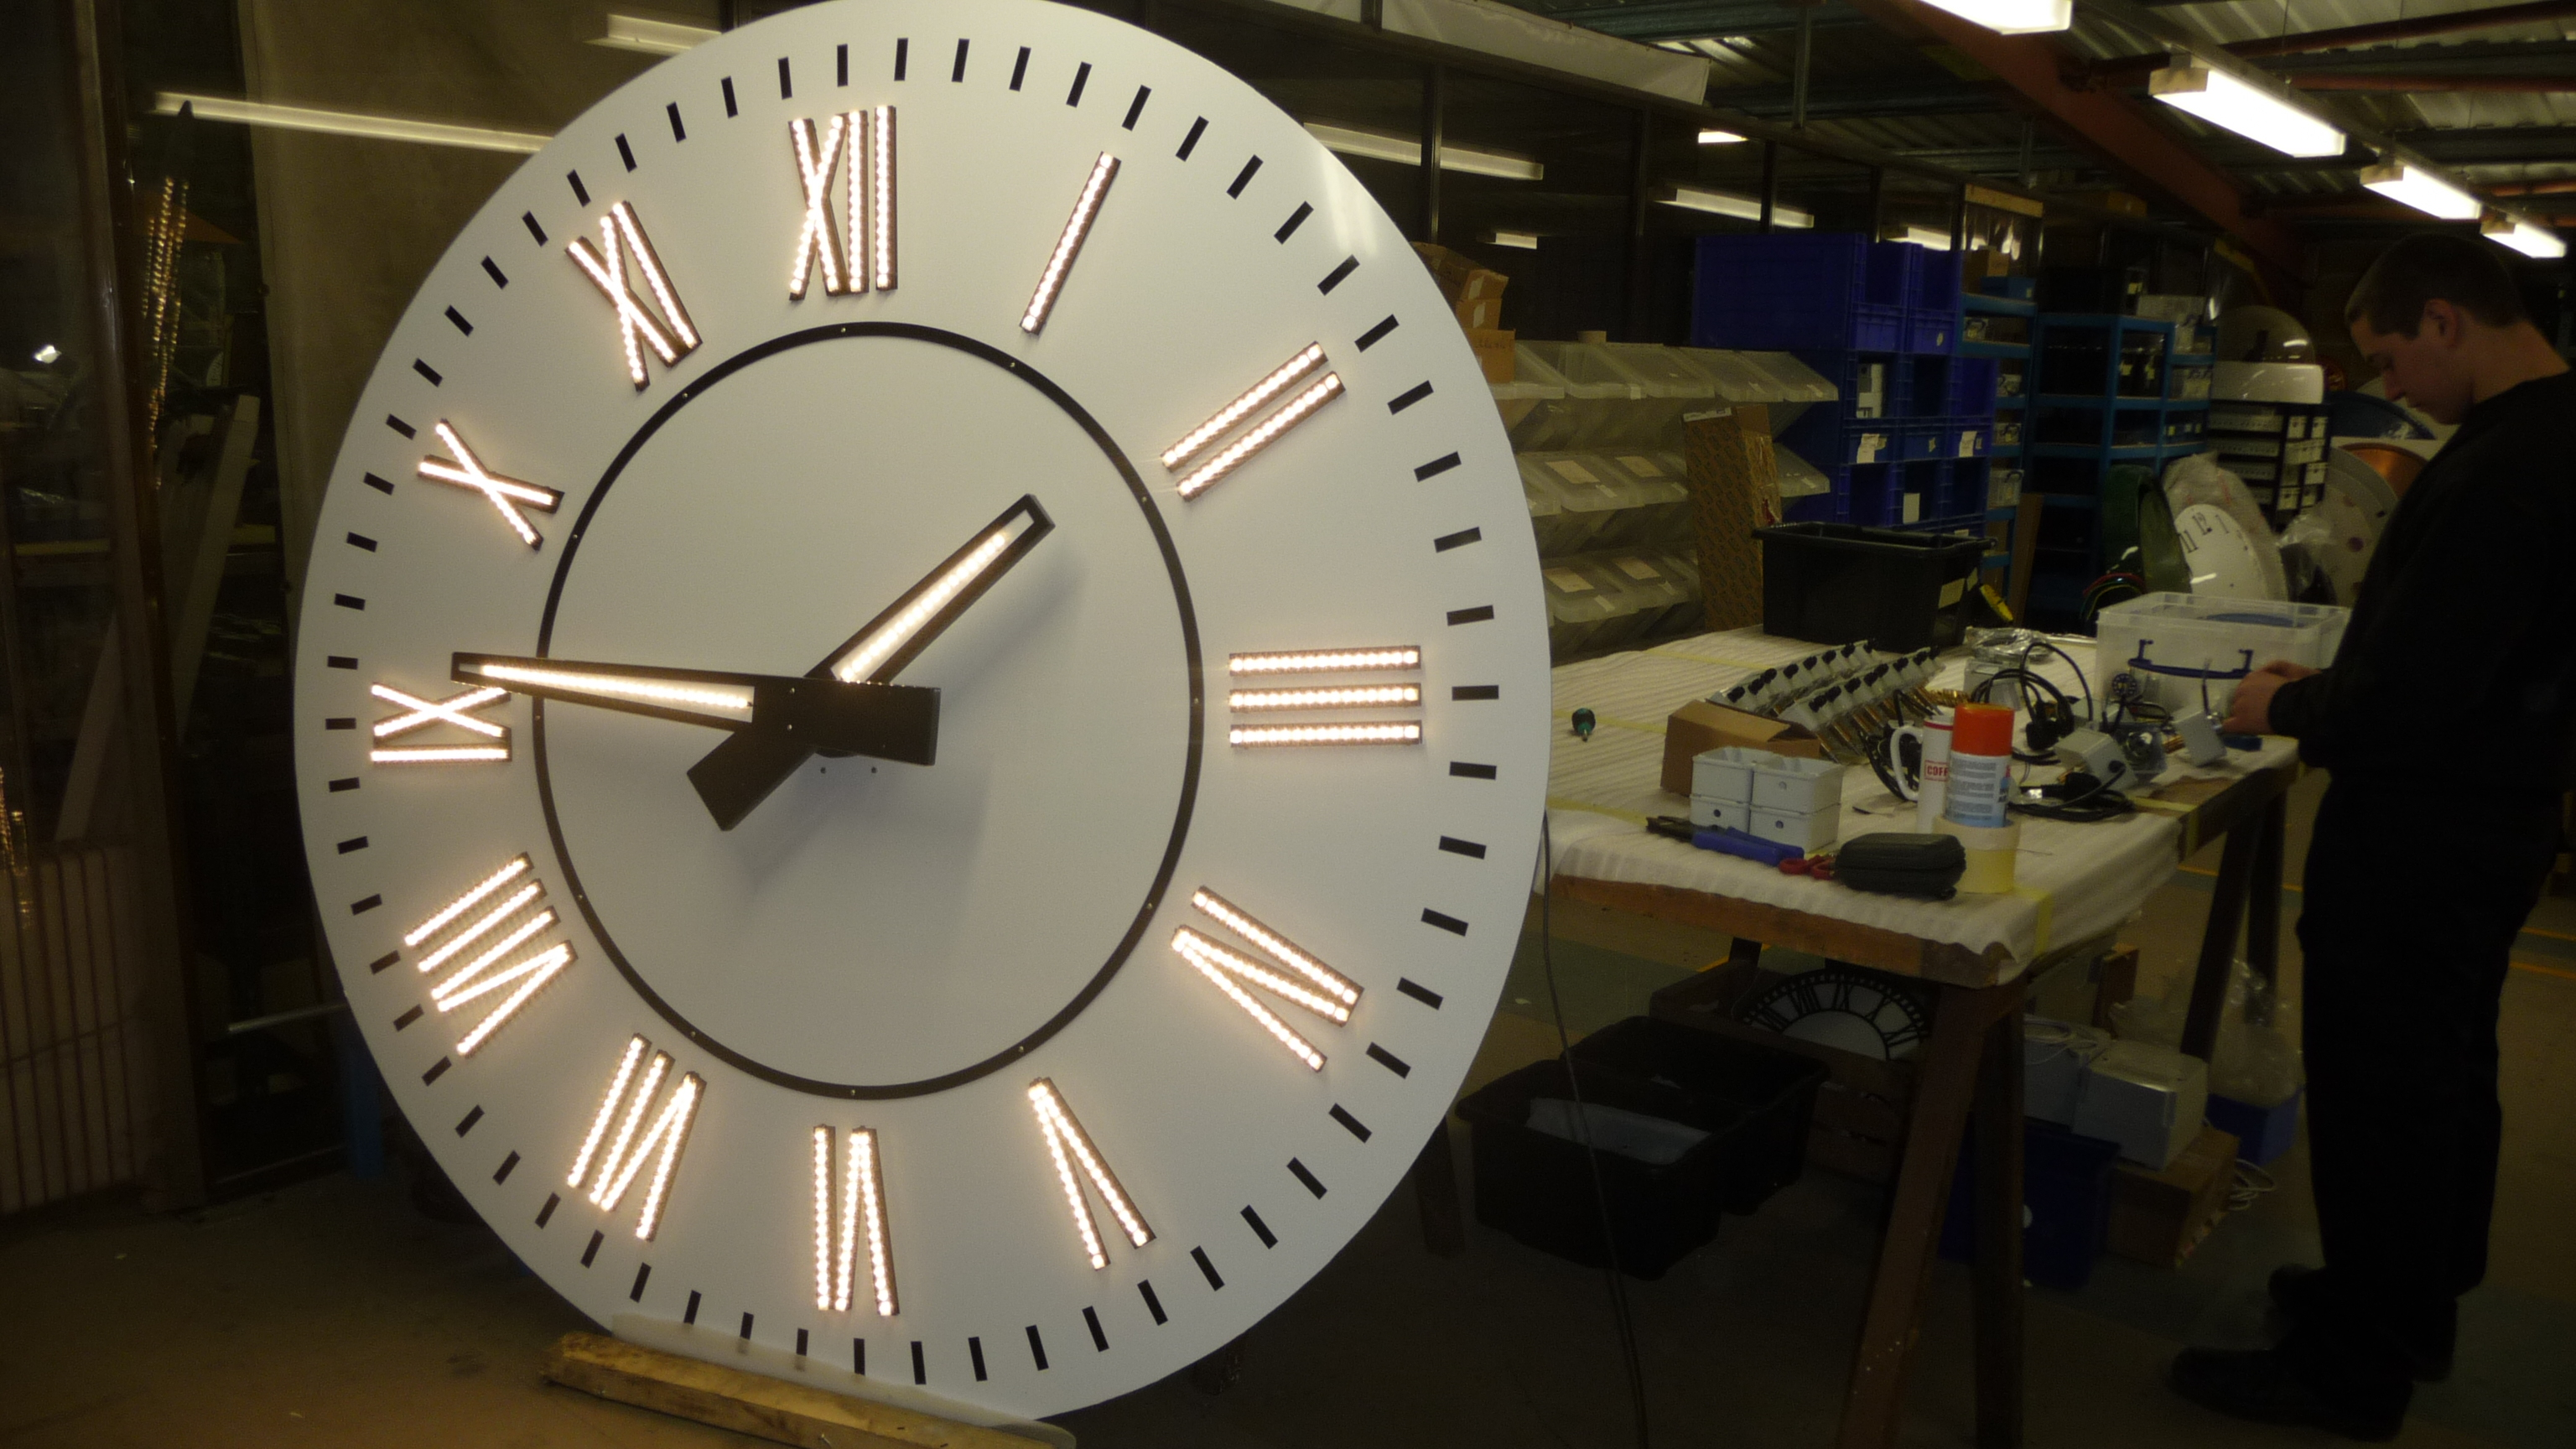 Lighting on clock dial